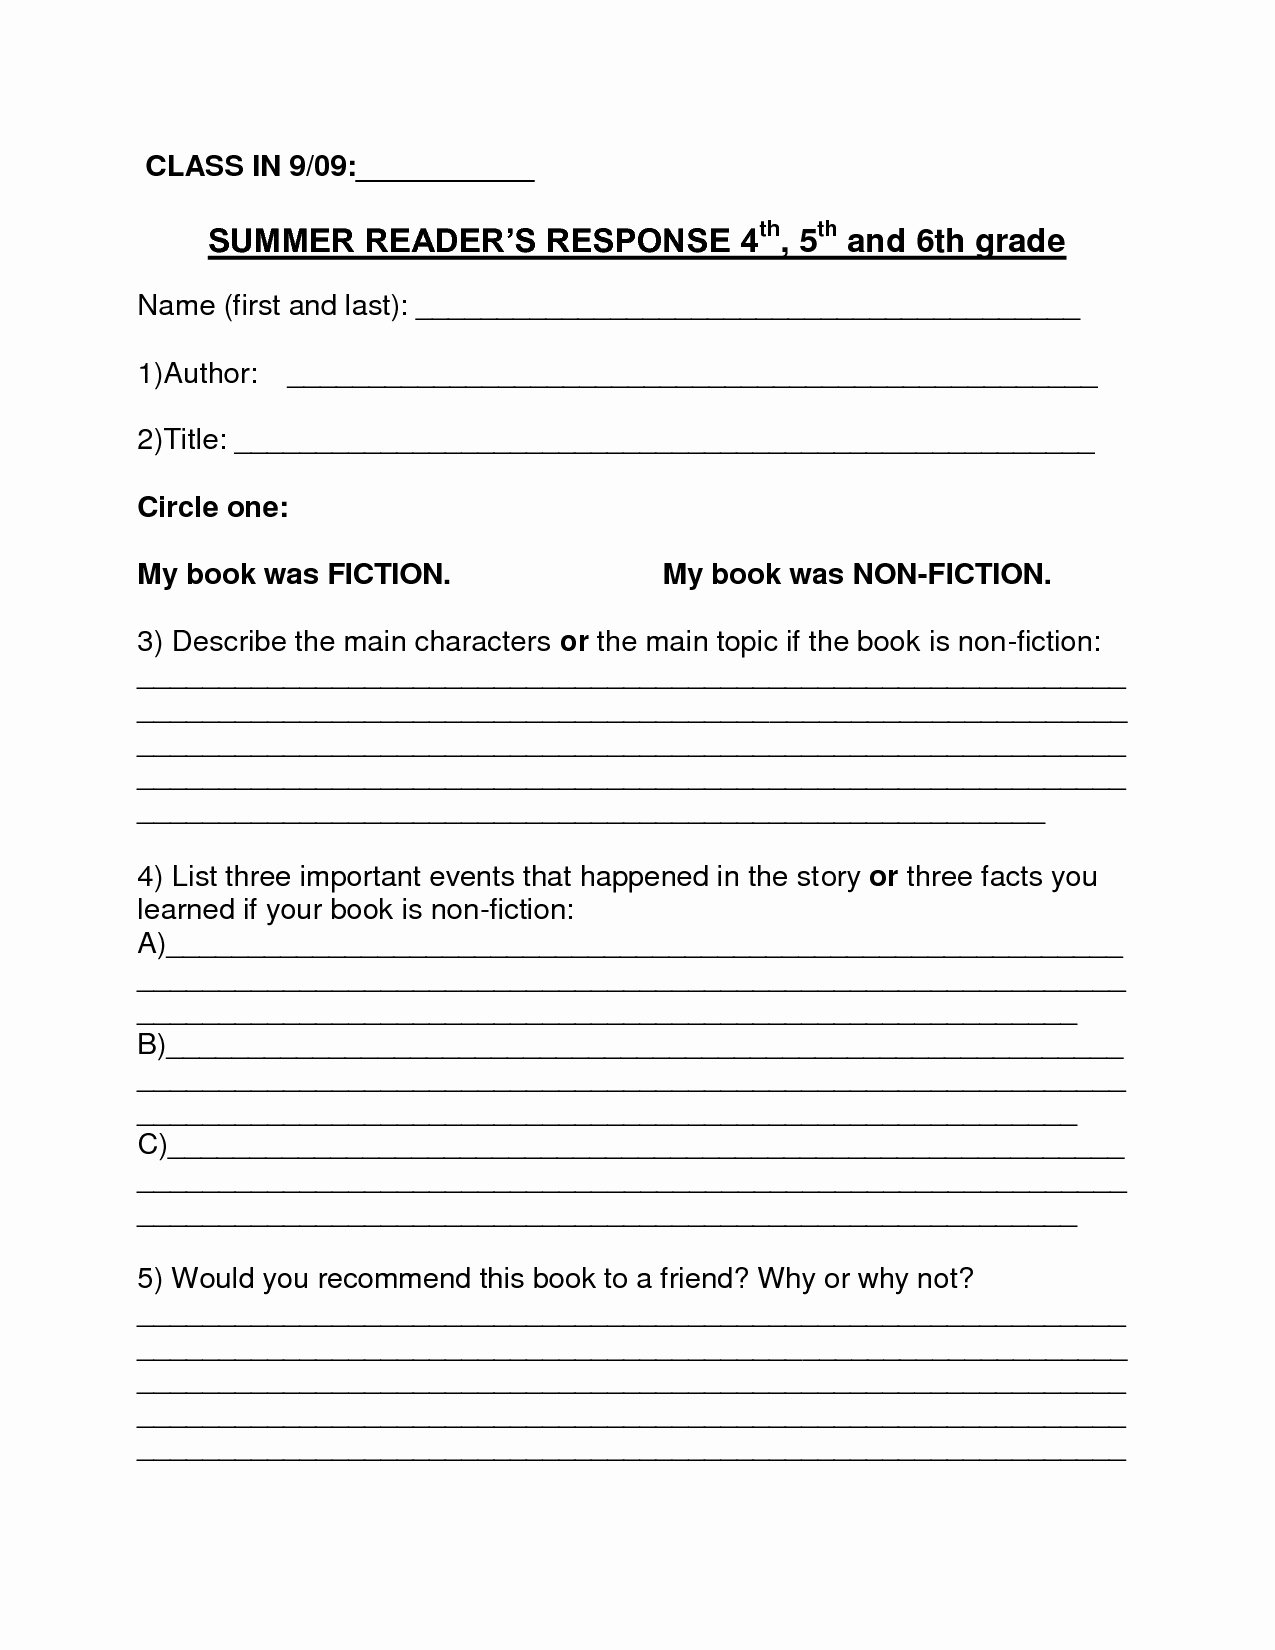 Image Result for Book Report Summer Reading form 6th Grade